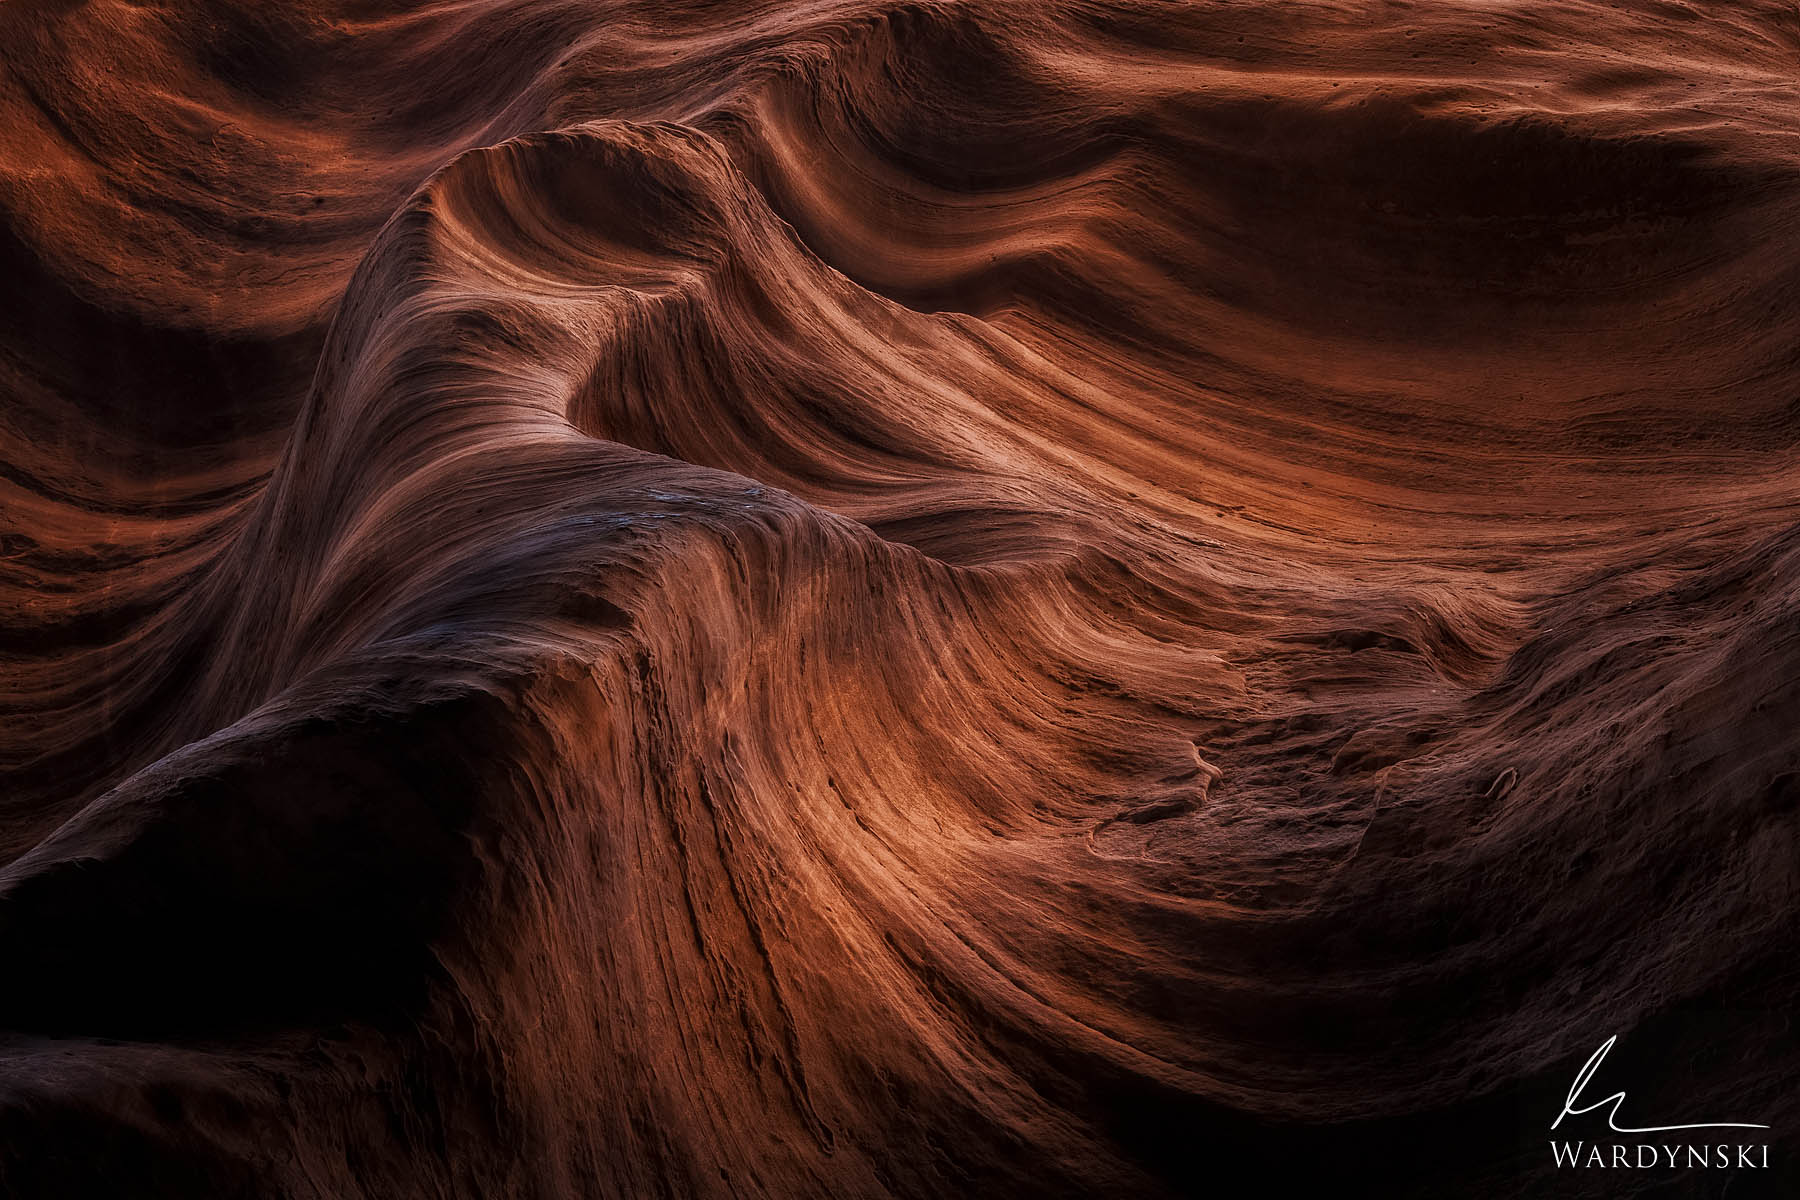 Fine Art Print | Limited Edition of 25  Contoured sandstone walls are echos of past storms in the Southwest. These textured slot...